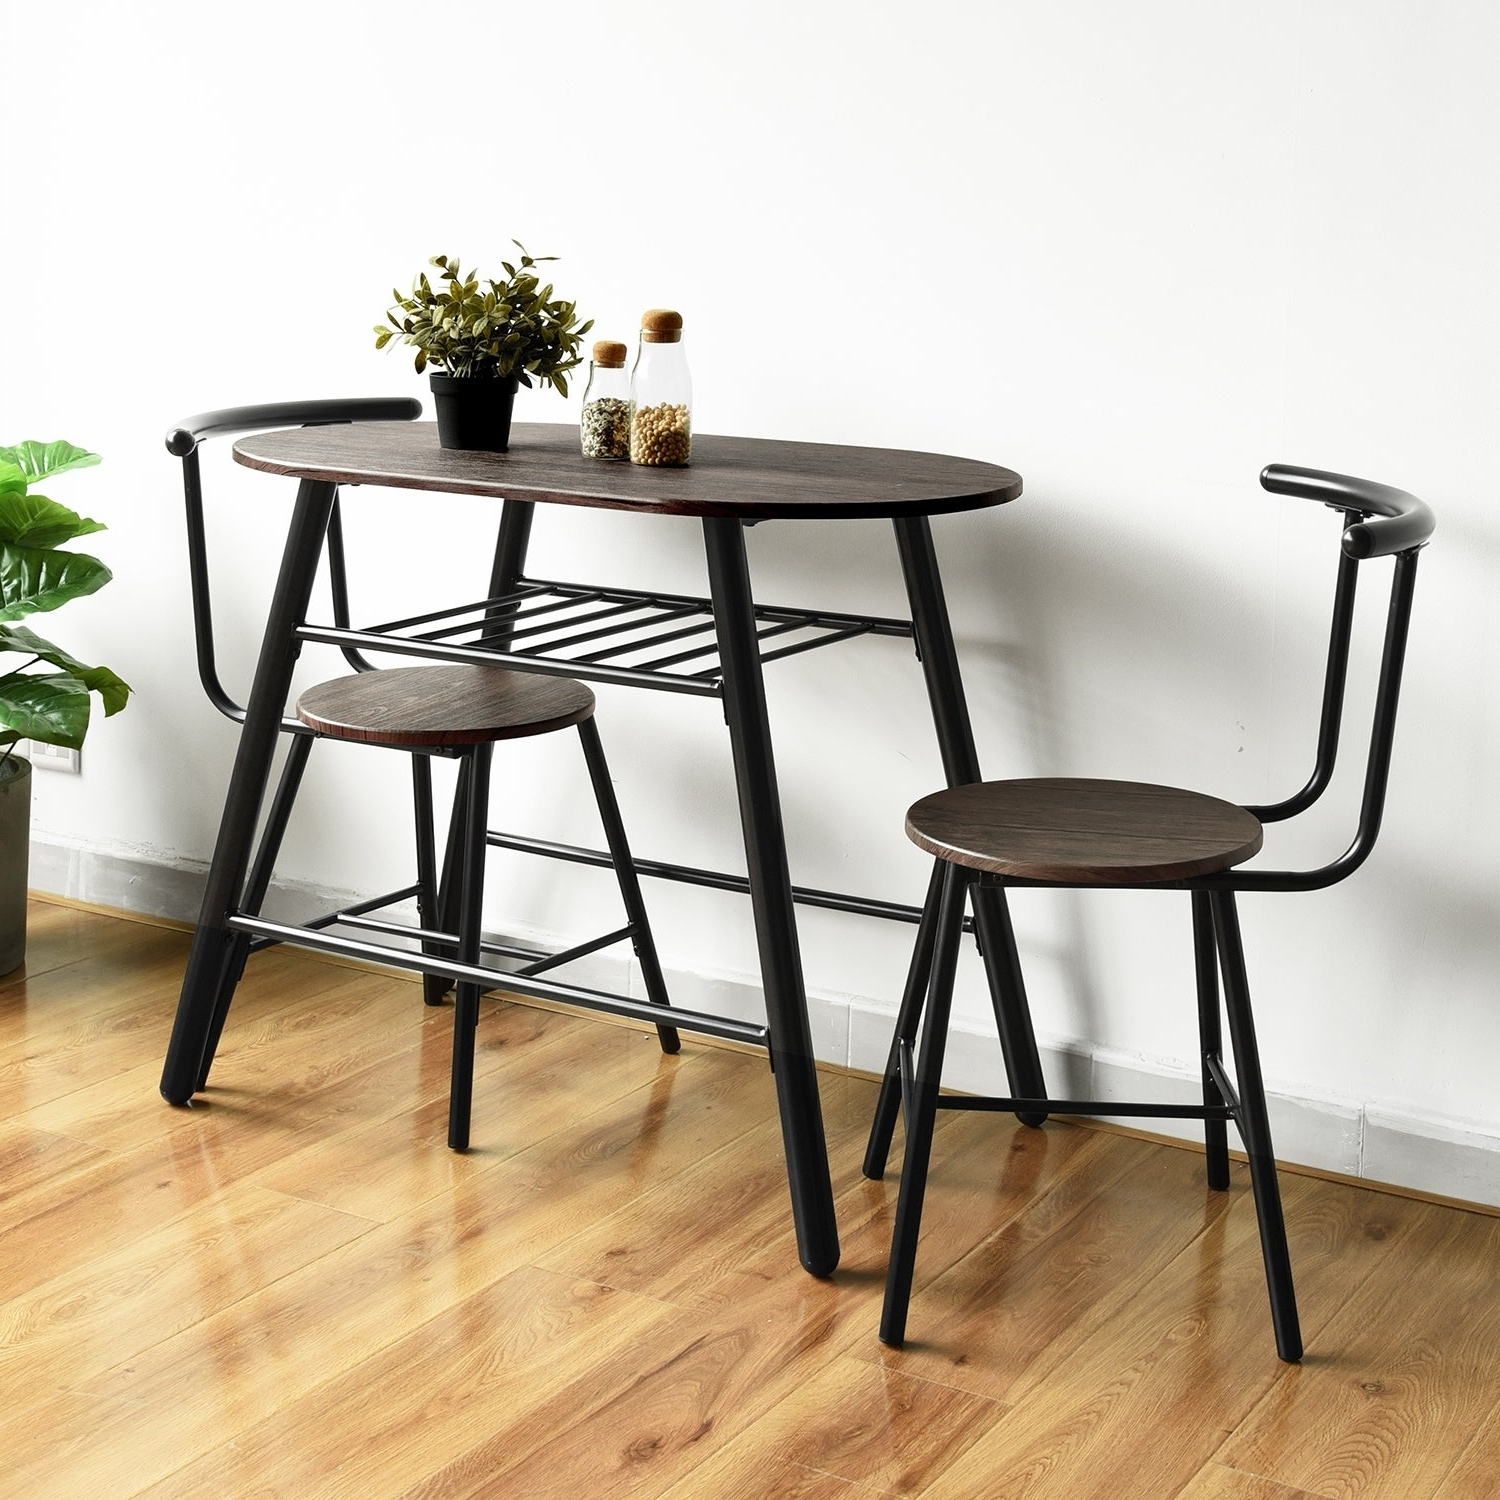 3 Piece Dining Sets For Widely Used Carbon Loft Searz 3 Piece Dining Set Table And Chairs (View 3 of 20)